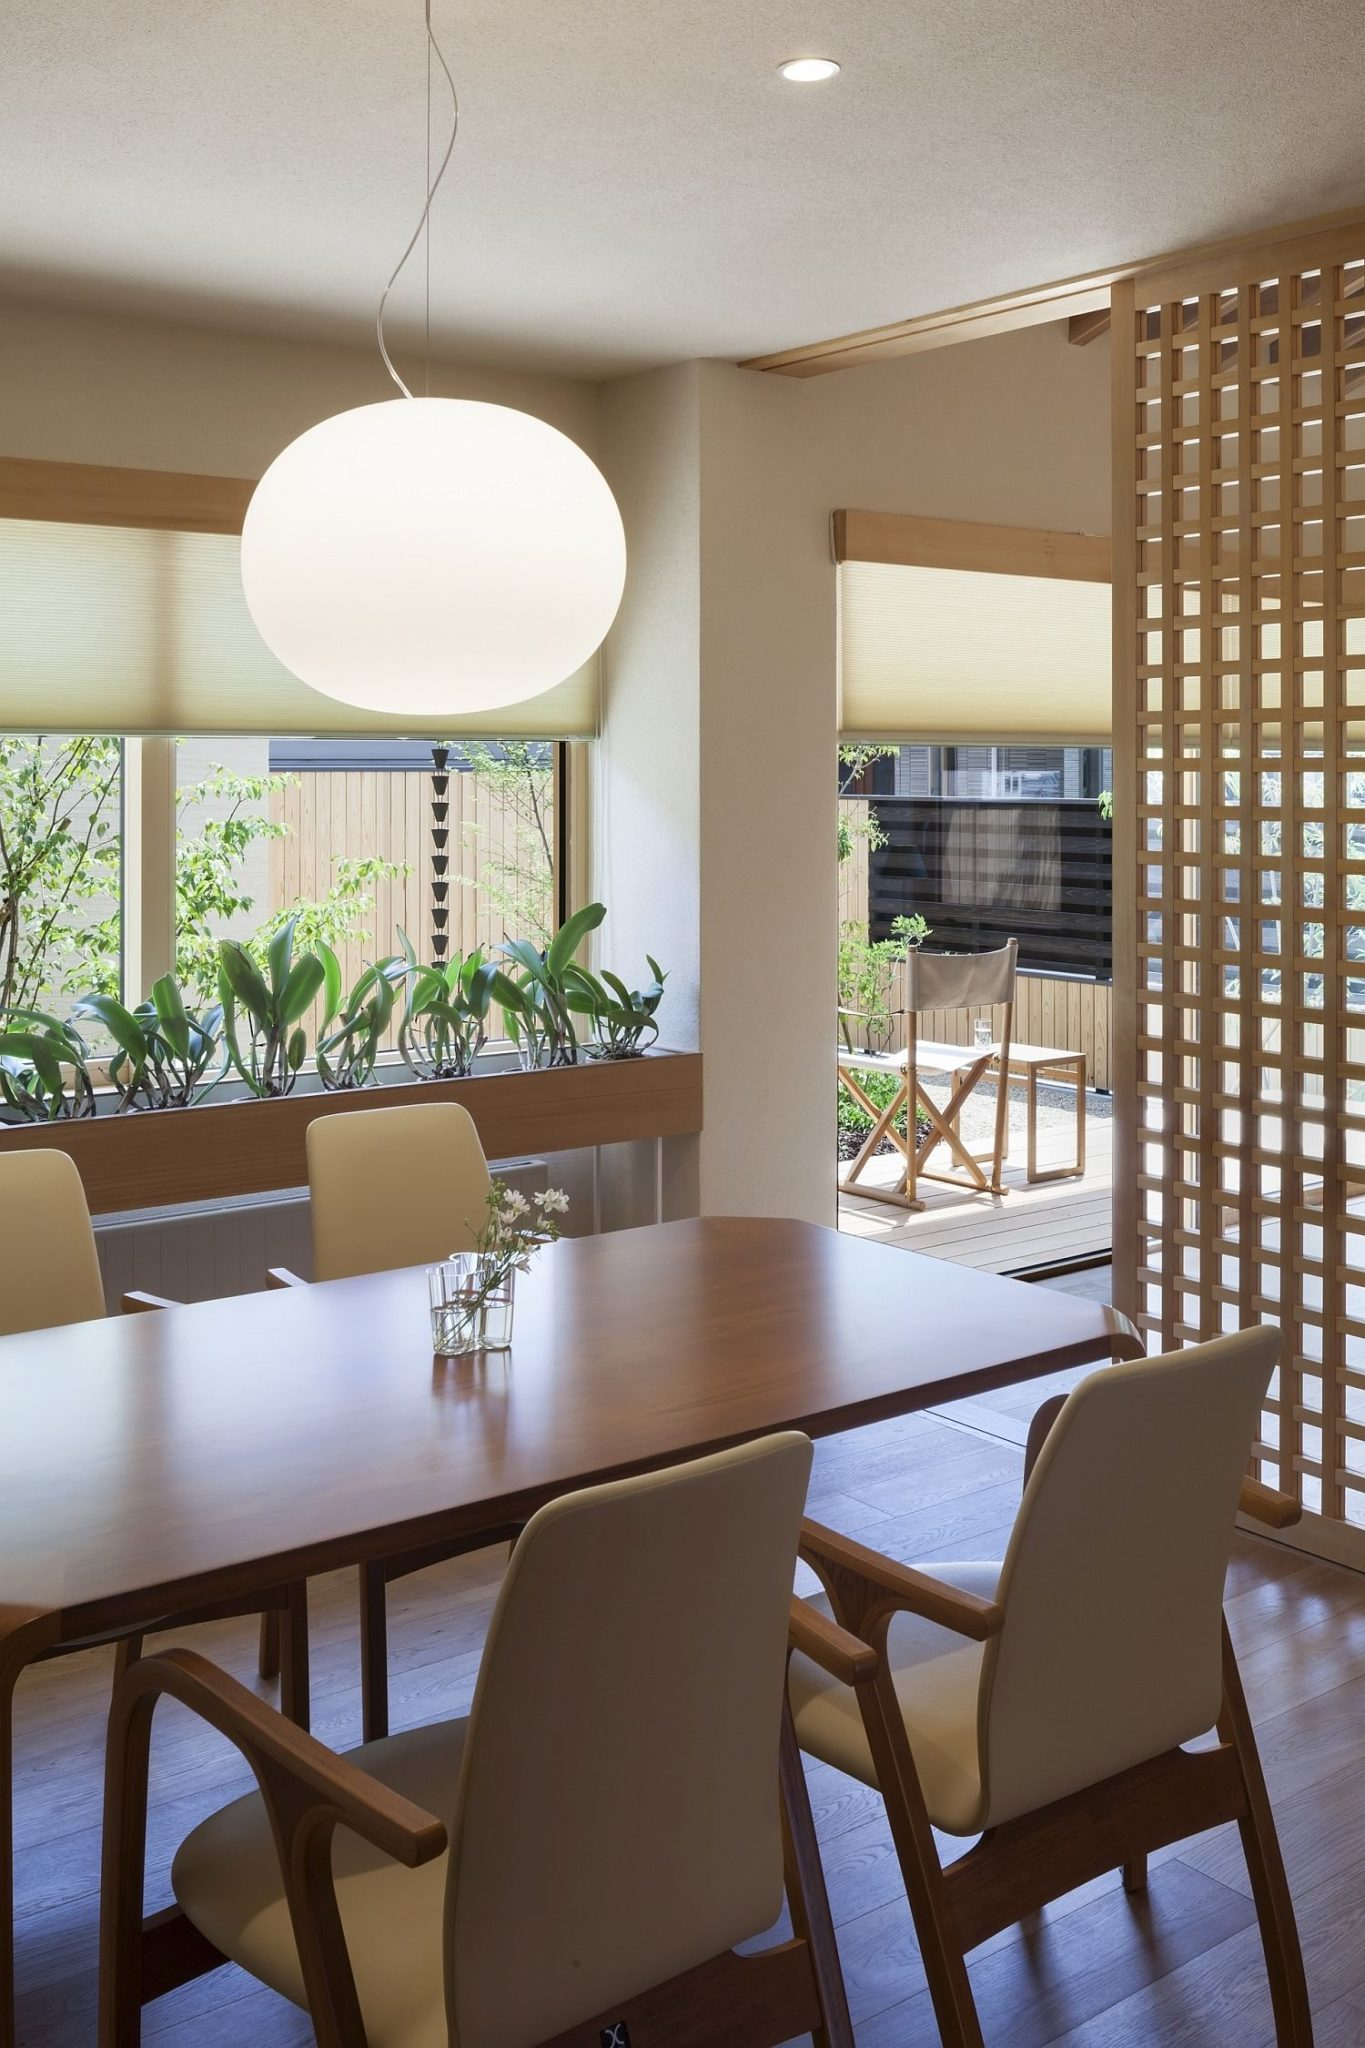 Dining area with smart pendant lighting and a cool divider